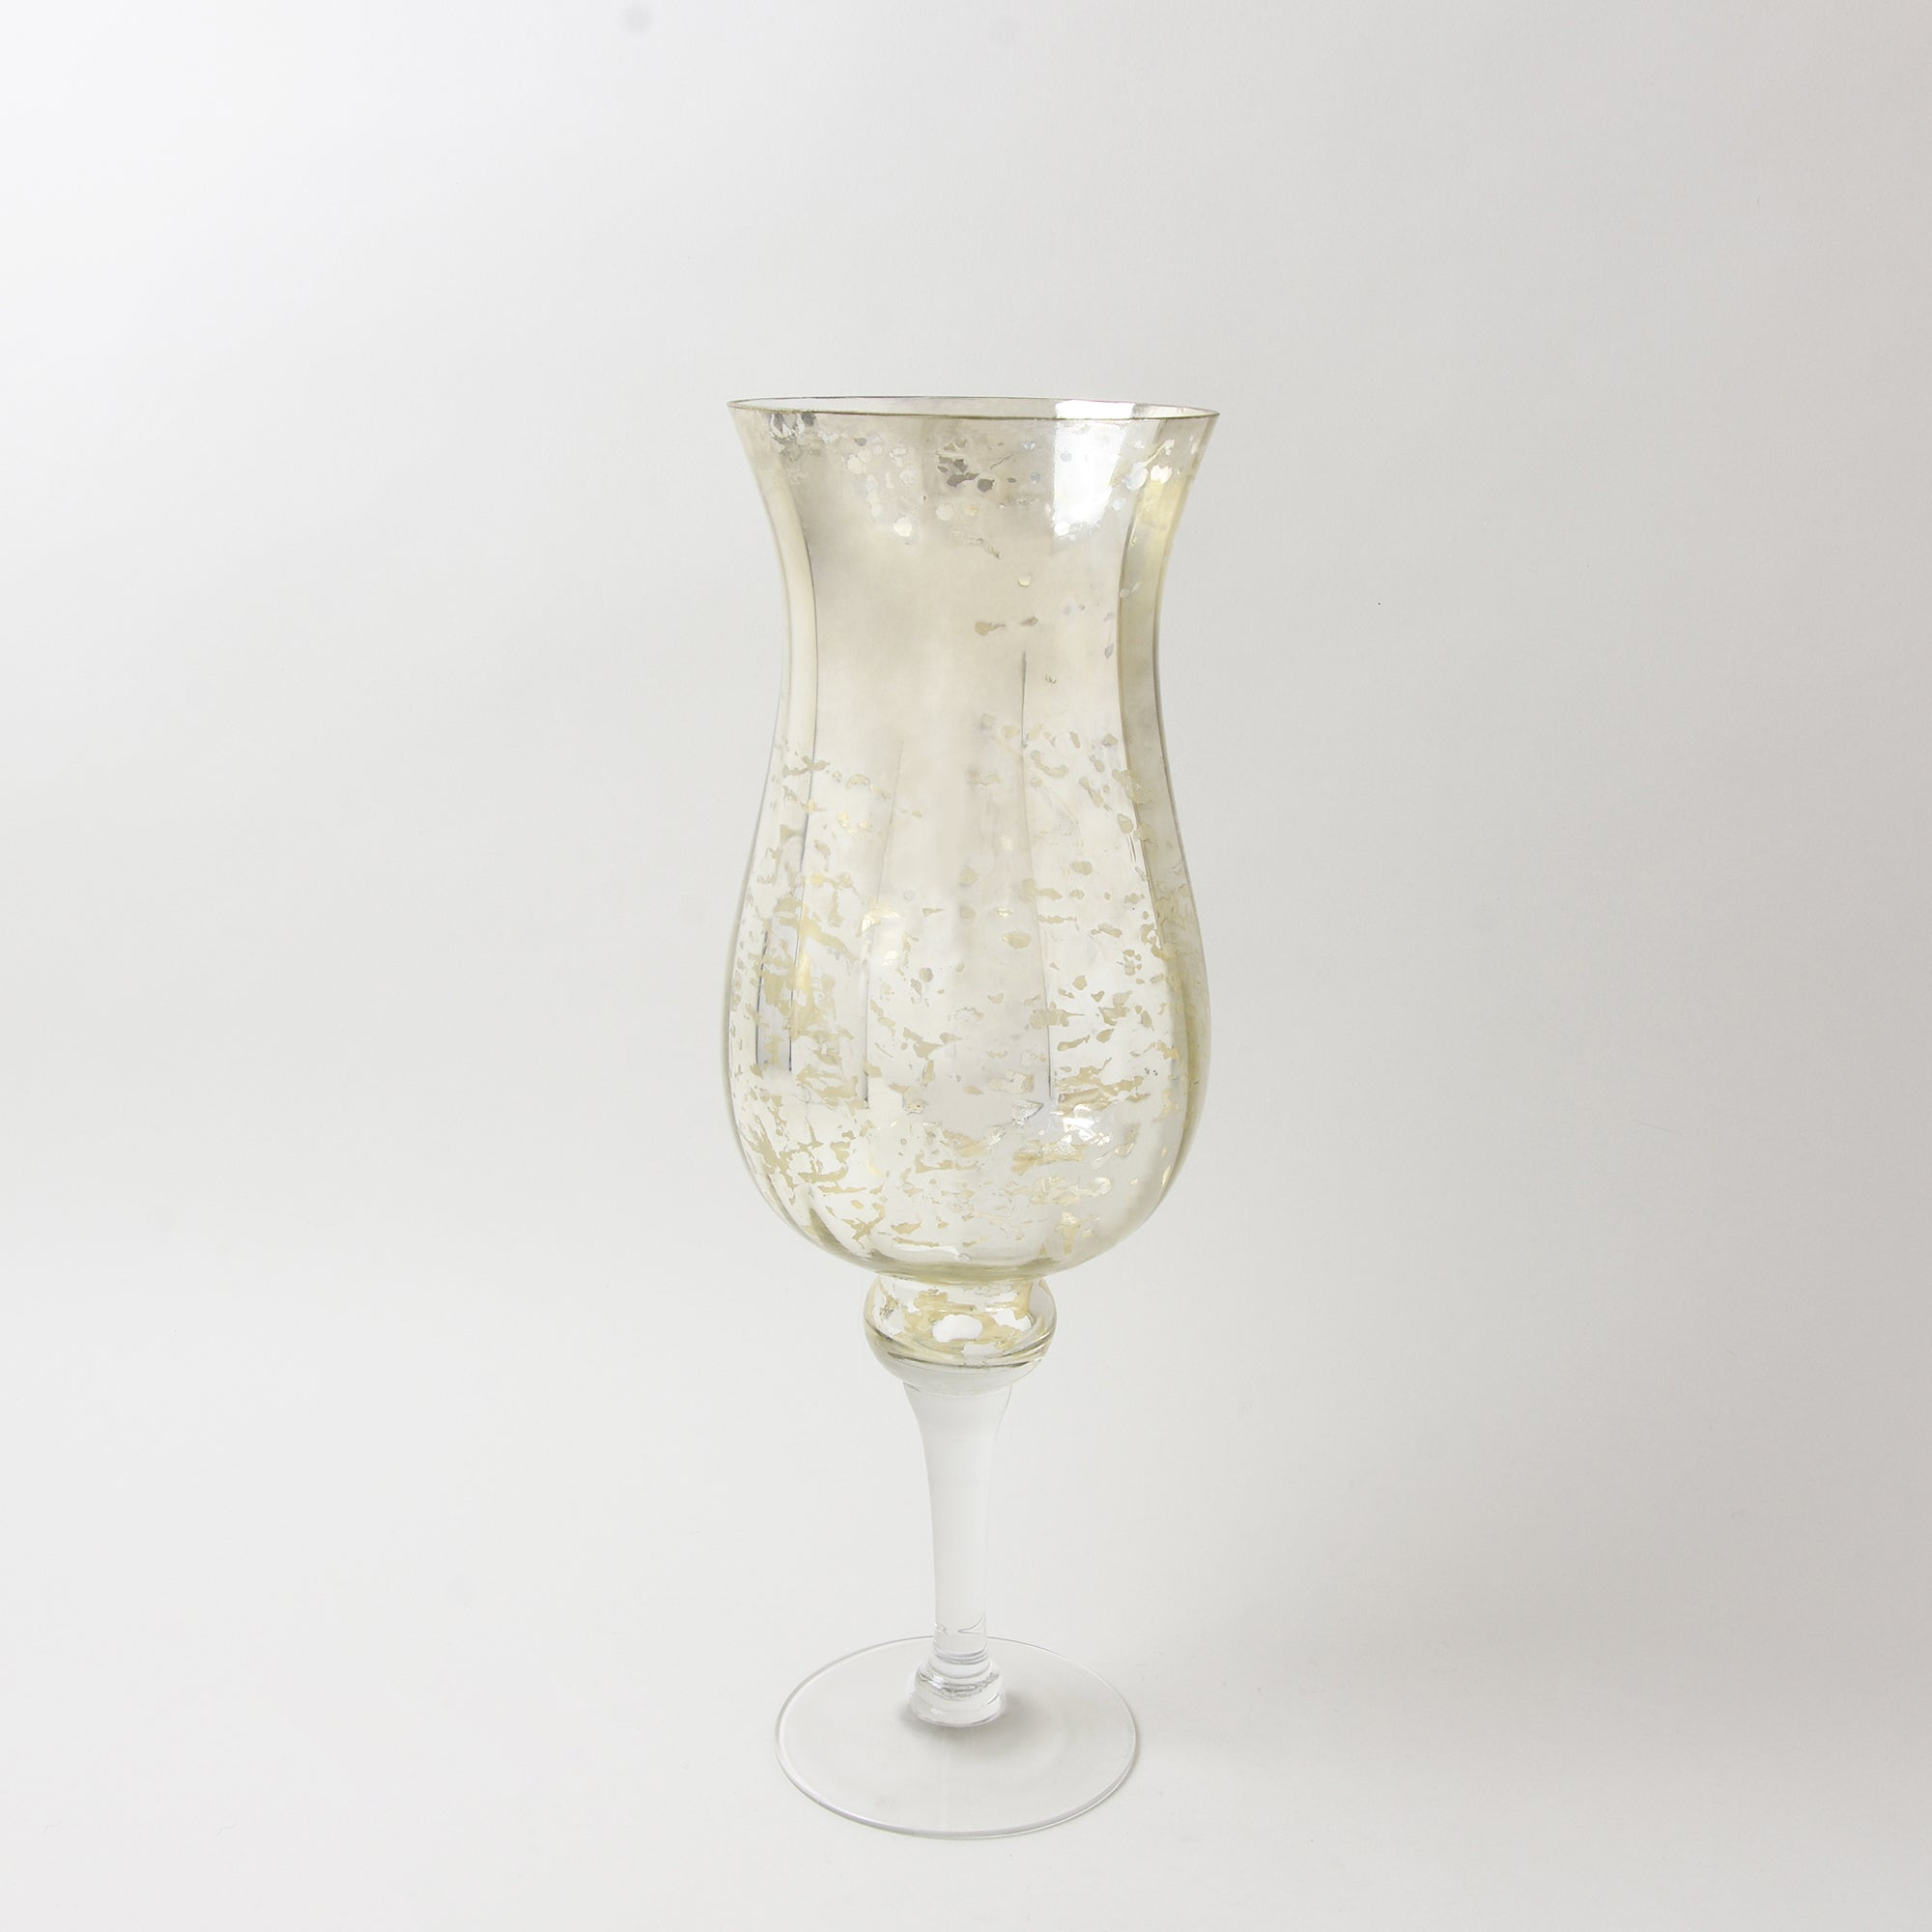 New Naturals Collection Mottled Glass Hurricane Vase